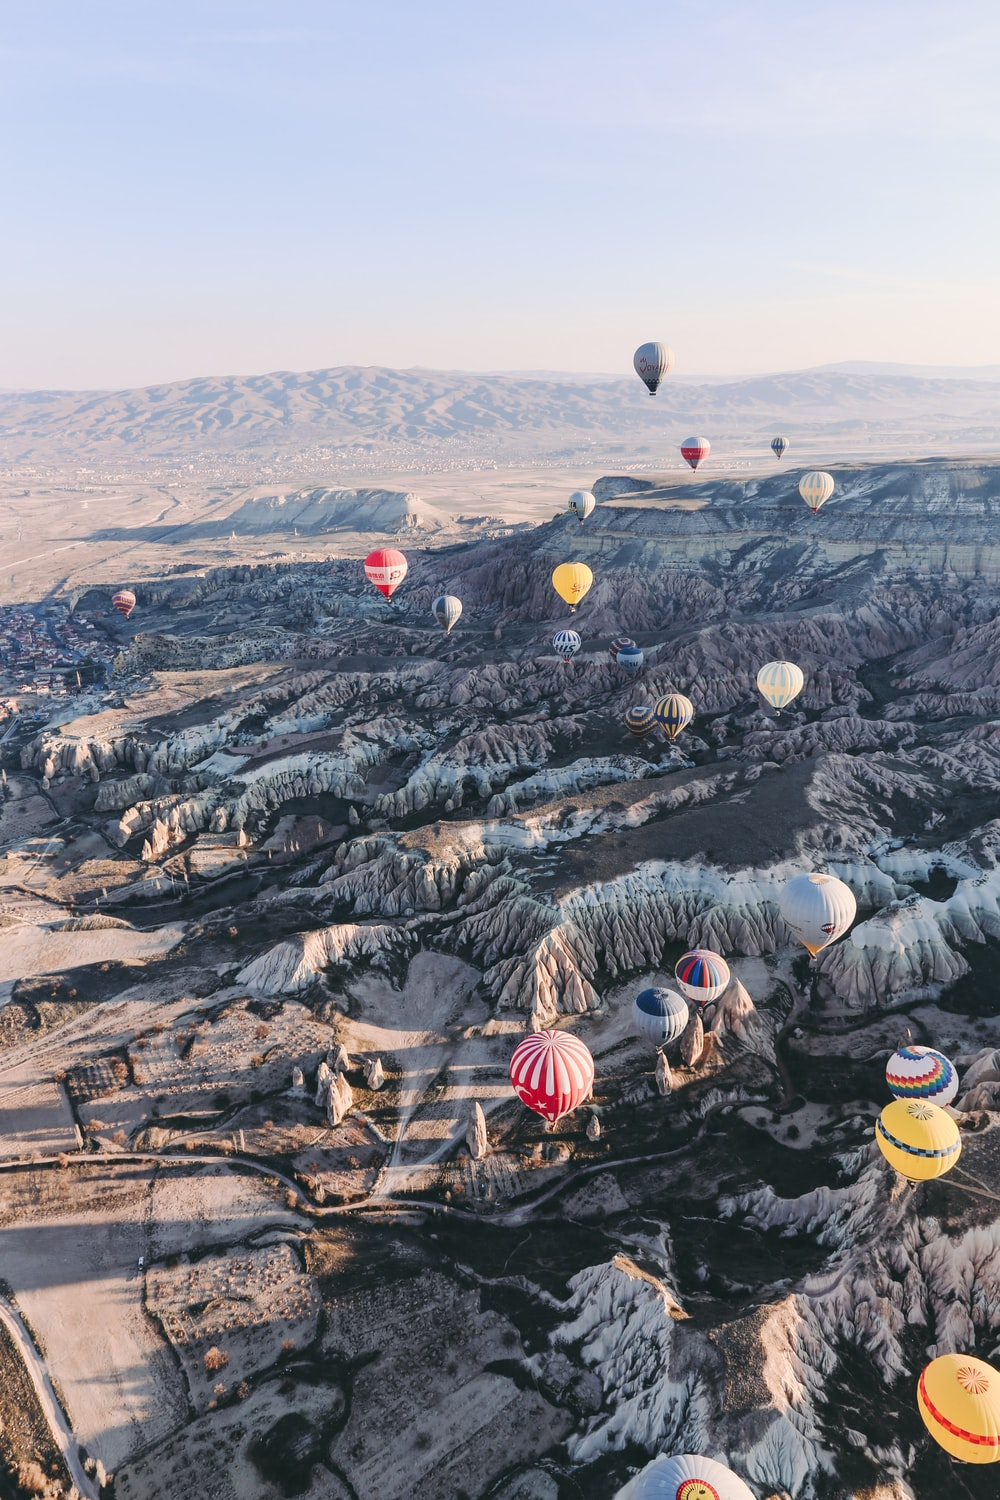 hot air balloons flew in mid air